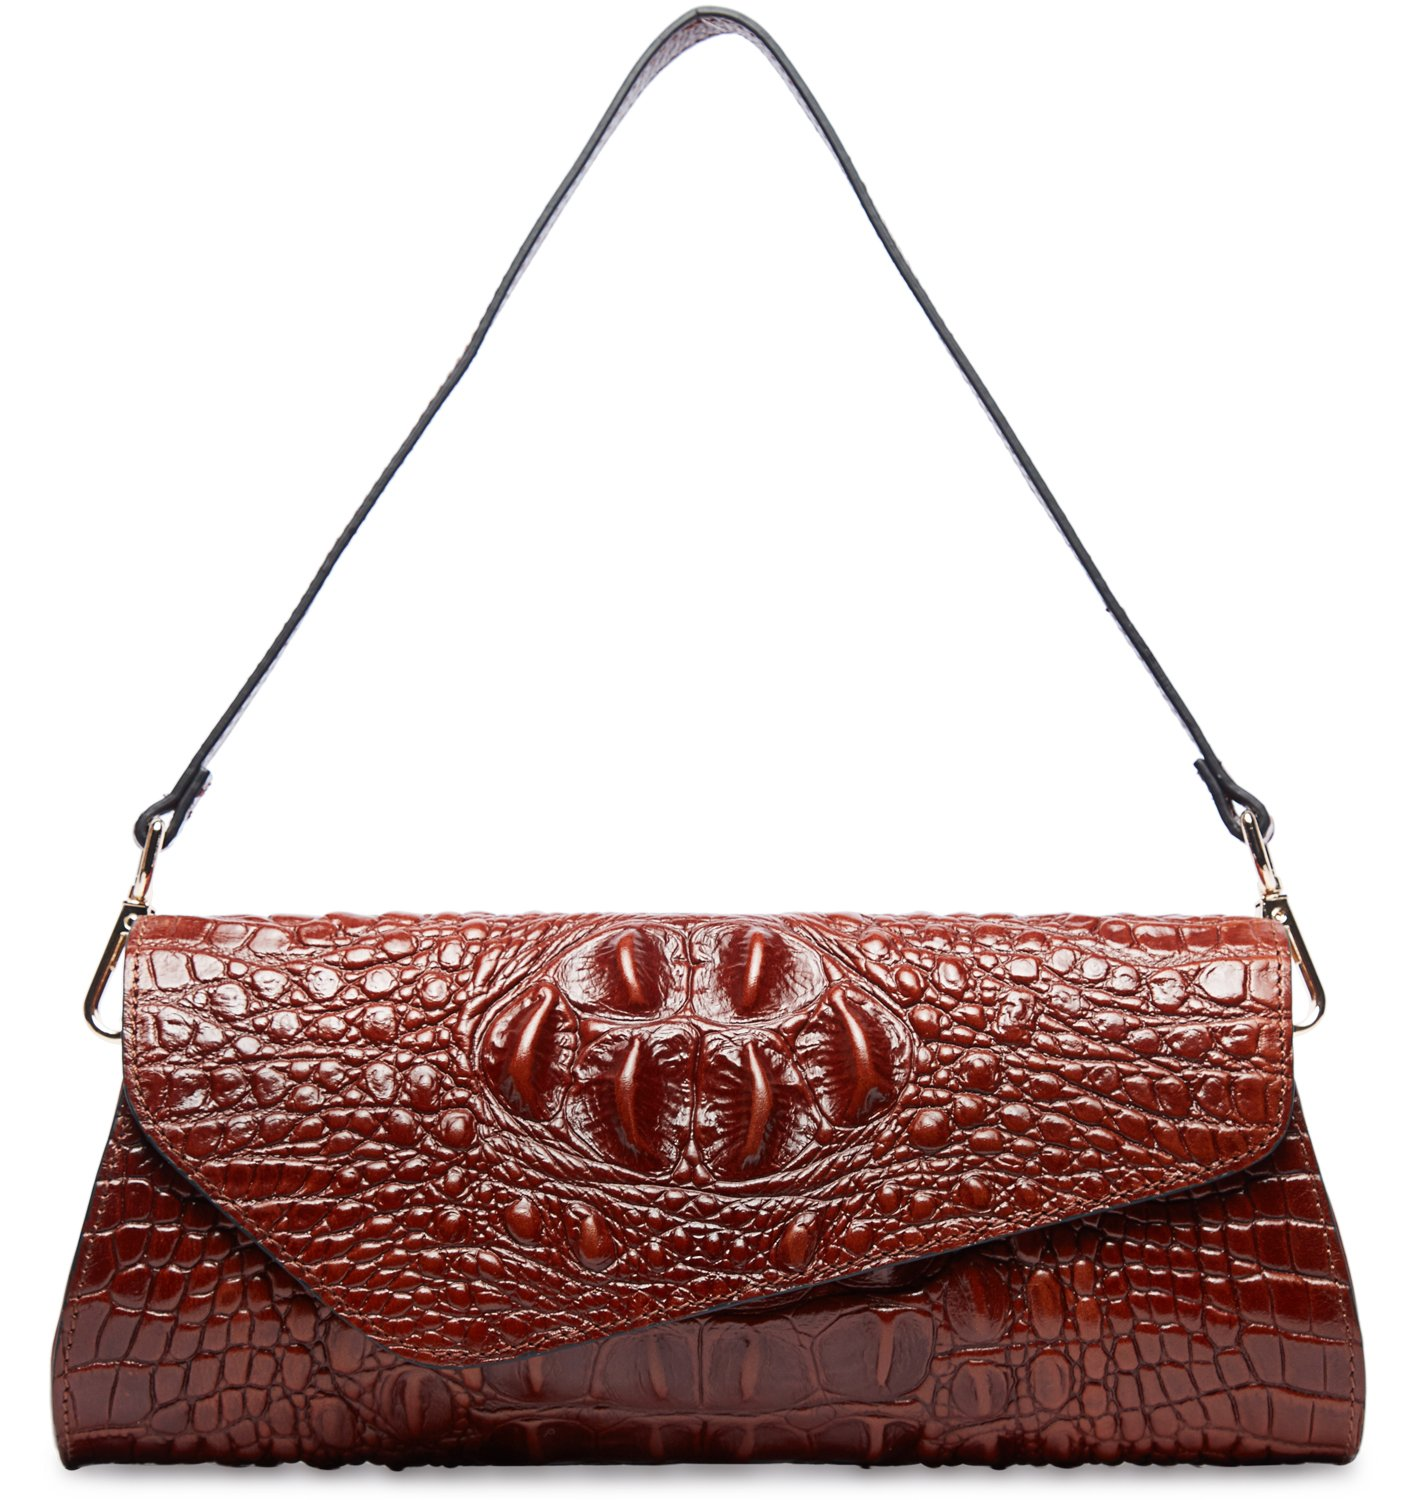 PIFUREN Womens Classic Evening Crocodile Skin Embossed Leather Party Clutch M1114 (One Size, Brown)